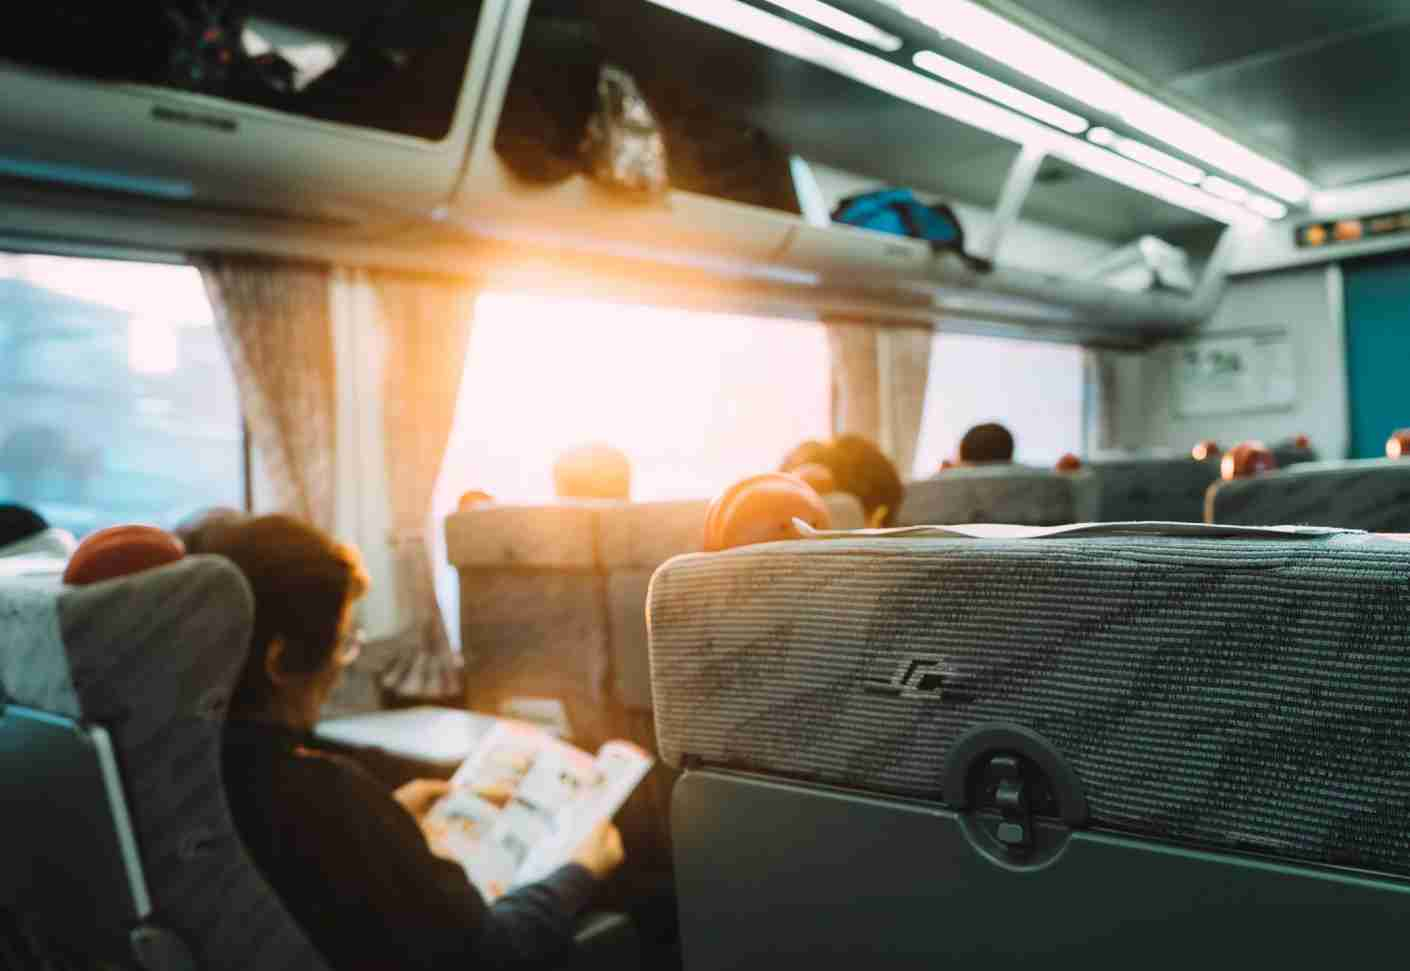 Overhead space full? Especially if you have a heavy bag, tuck your suitcase behind the last row of seats. Image courtesy of Quynh Anh Nguyen/Getty Images.